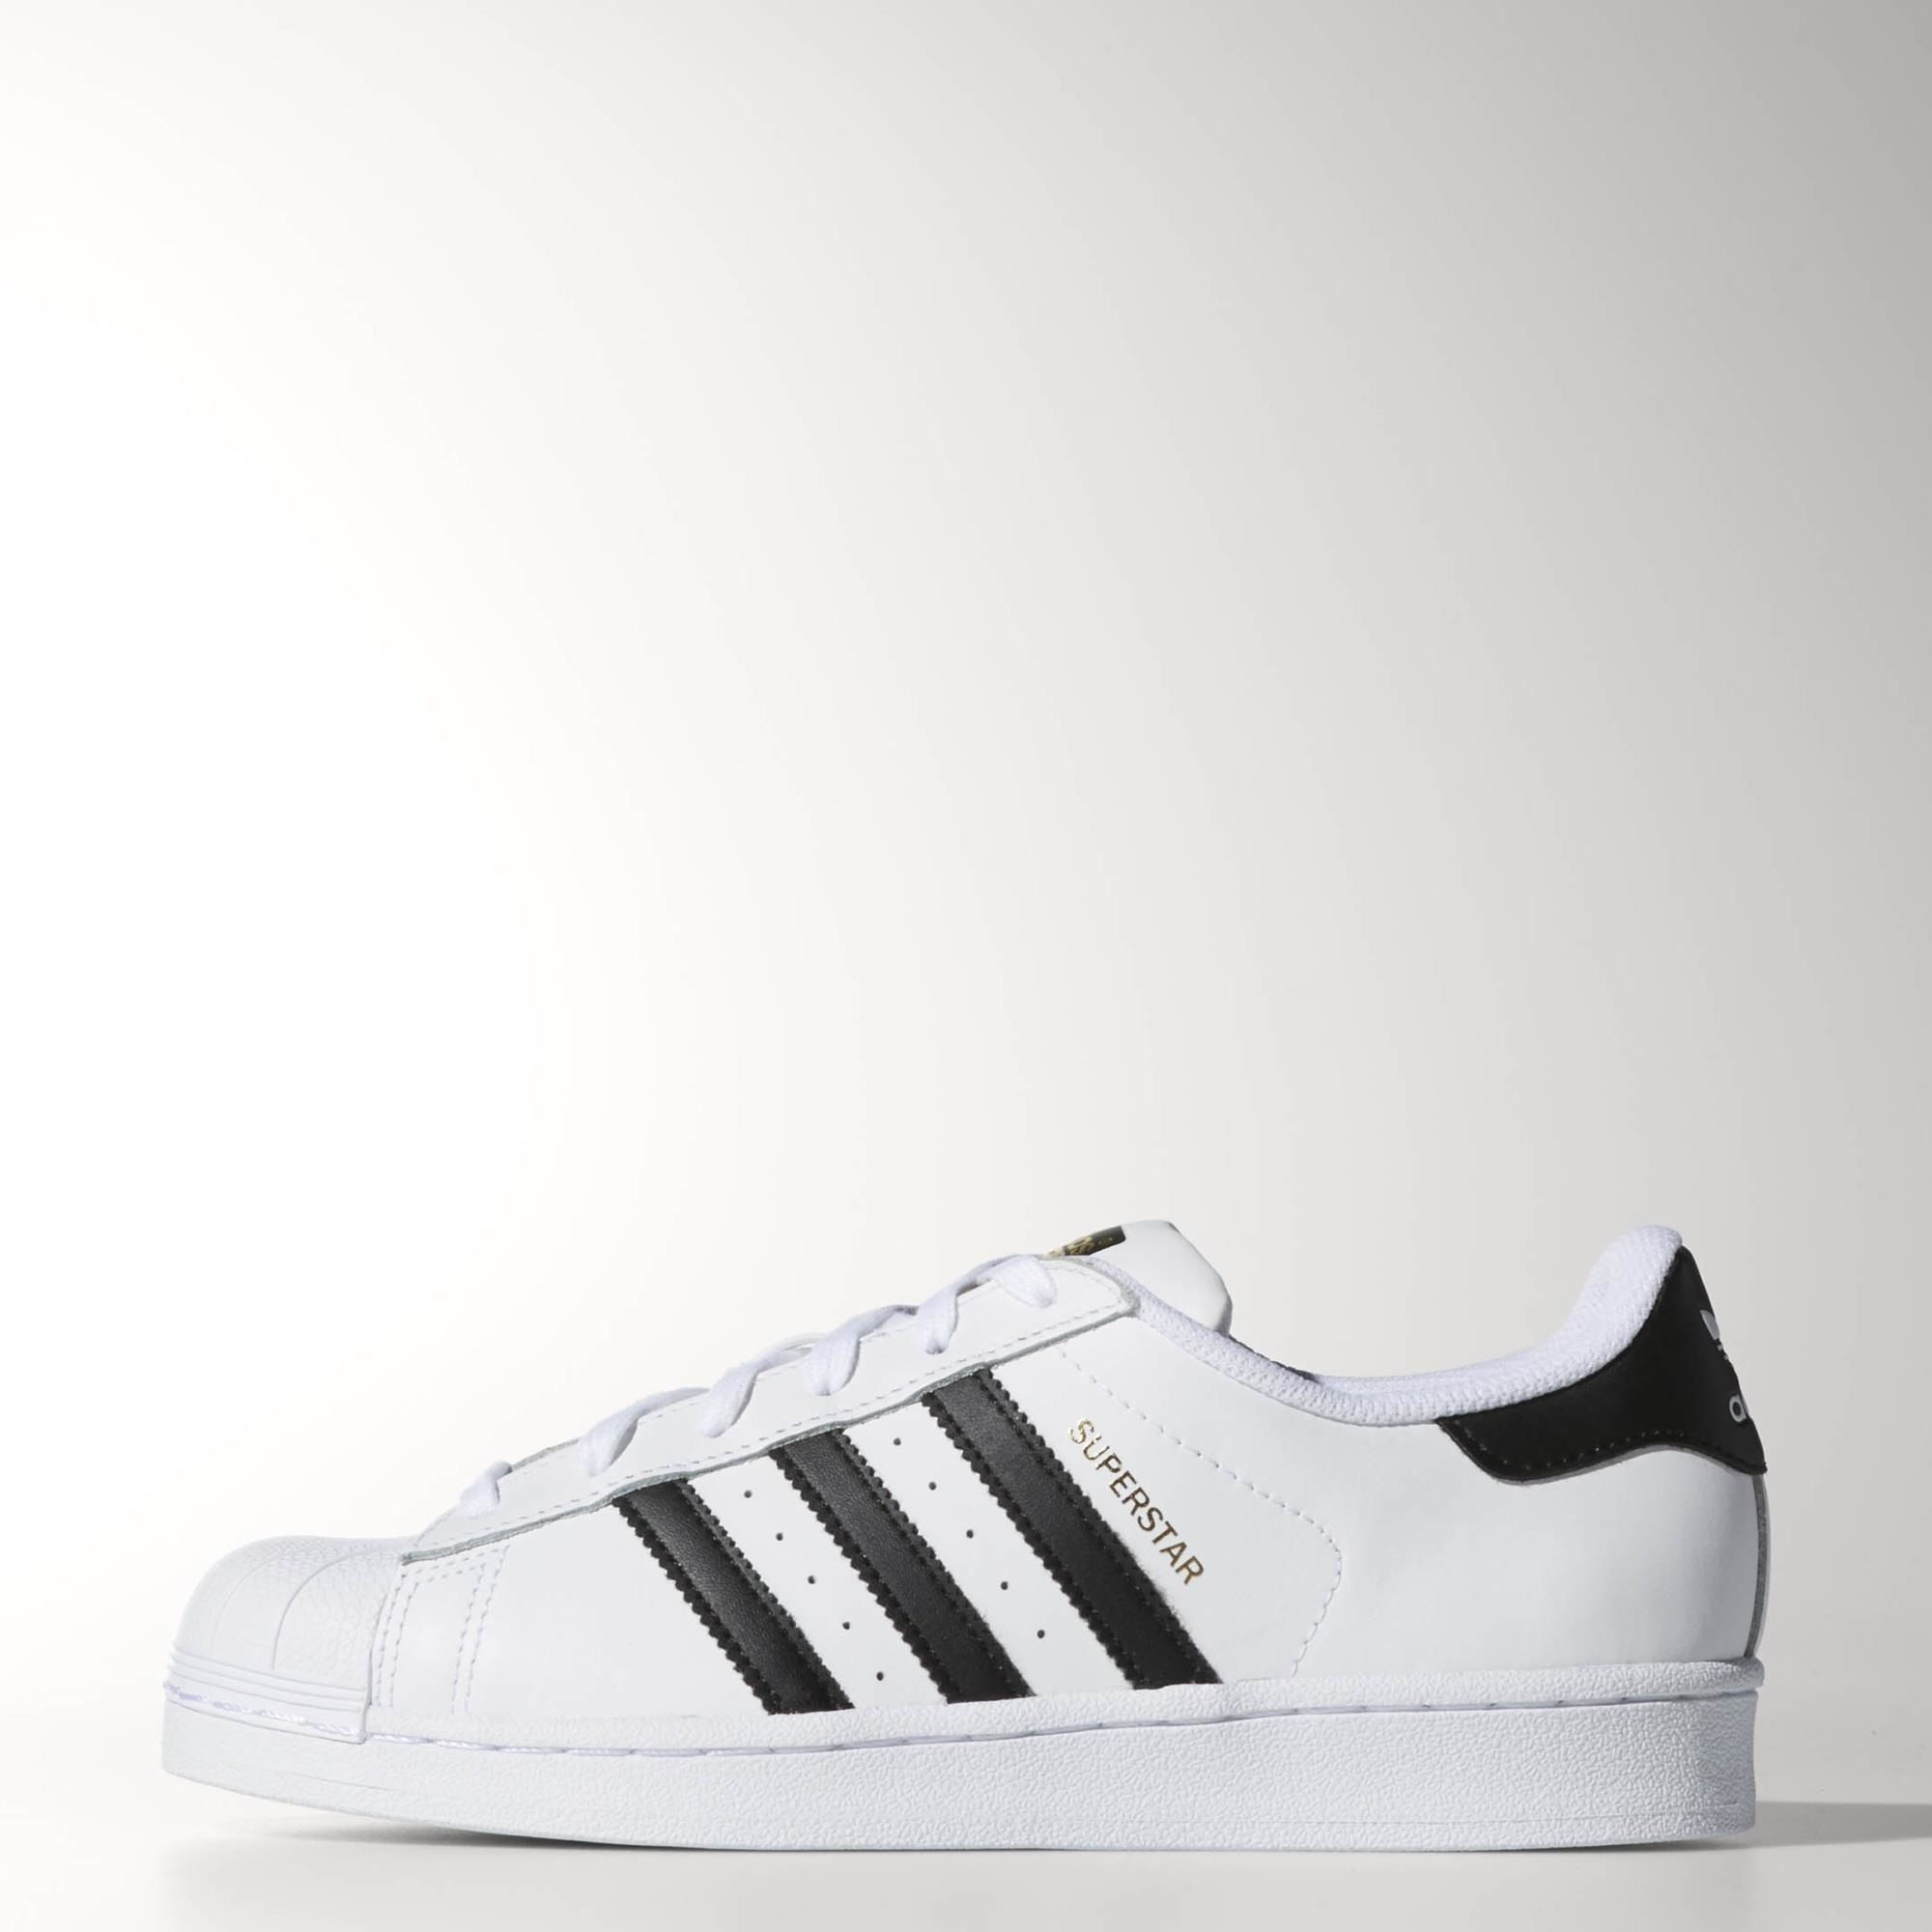 A contender since 1969, the adidas Superstar shoe was the first all-leather  low